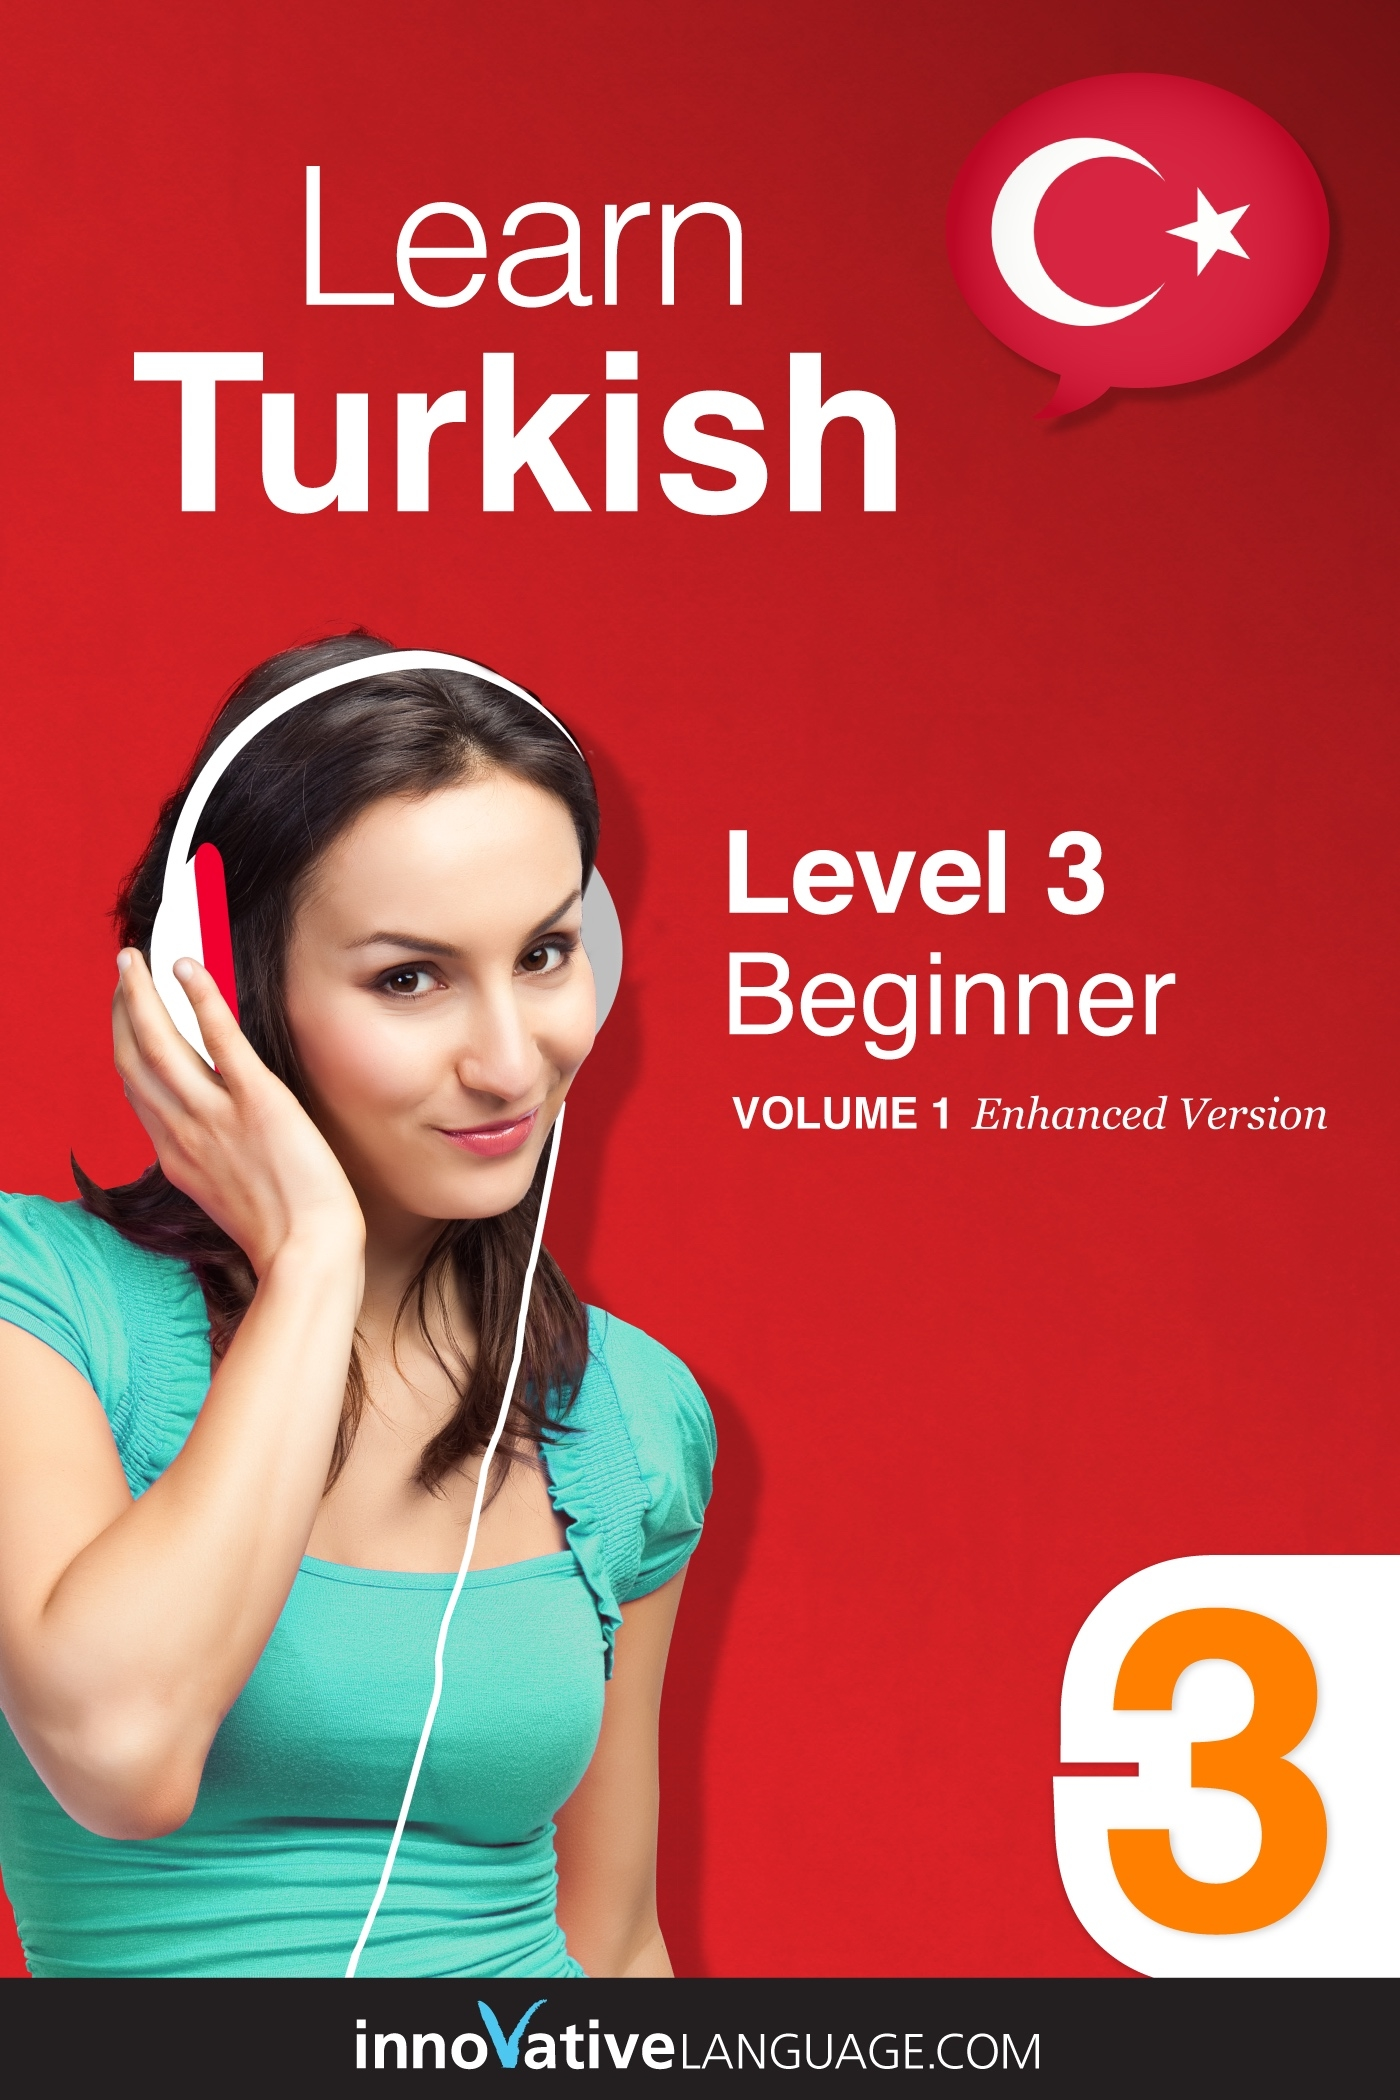 [eBook] Learn Turkish - Level 3: Beginner